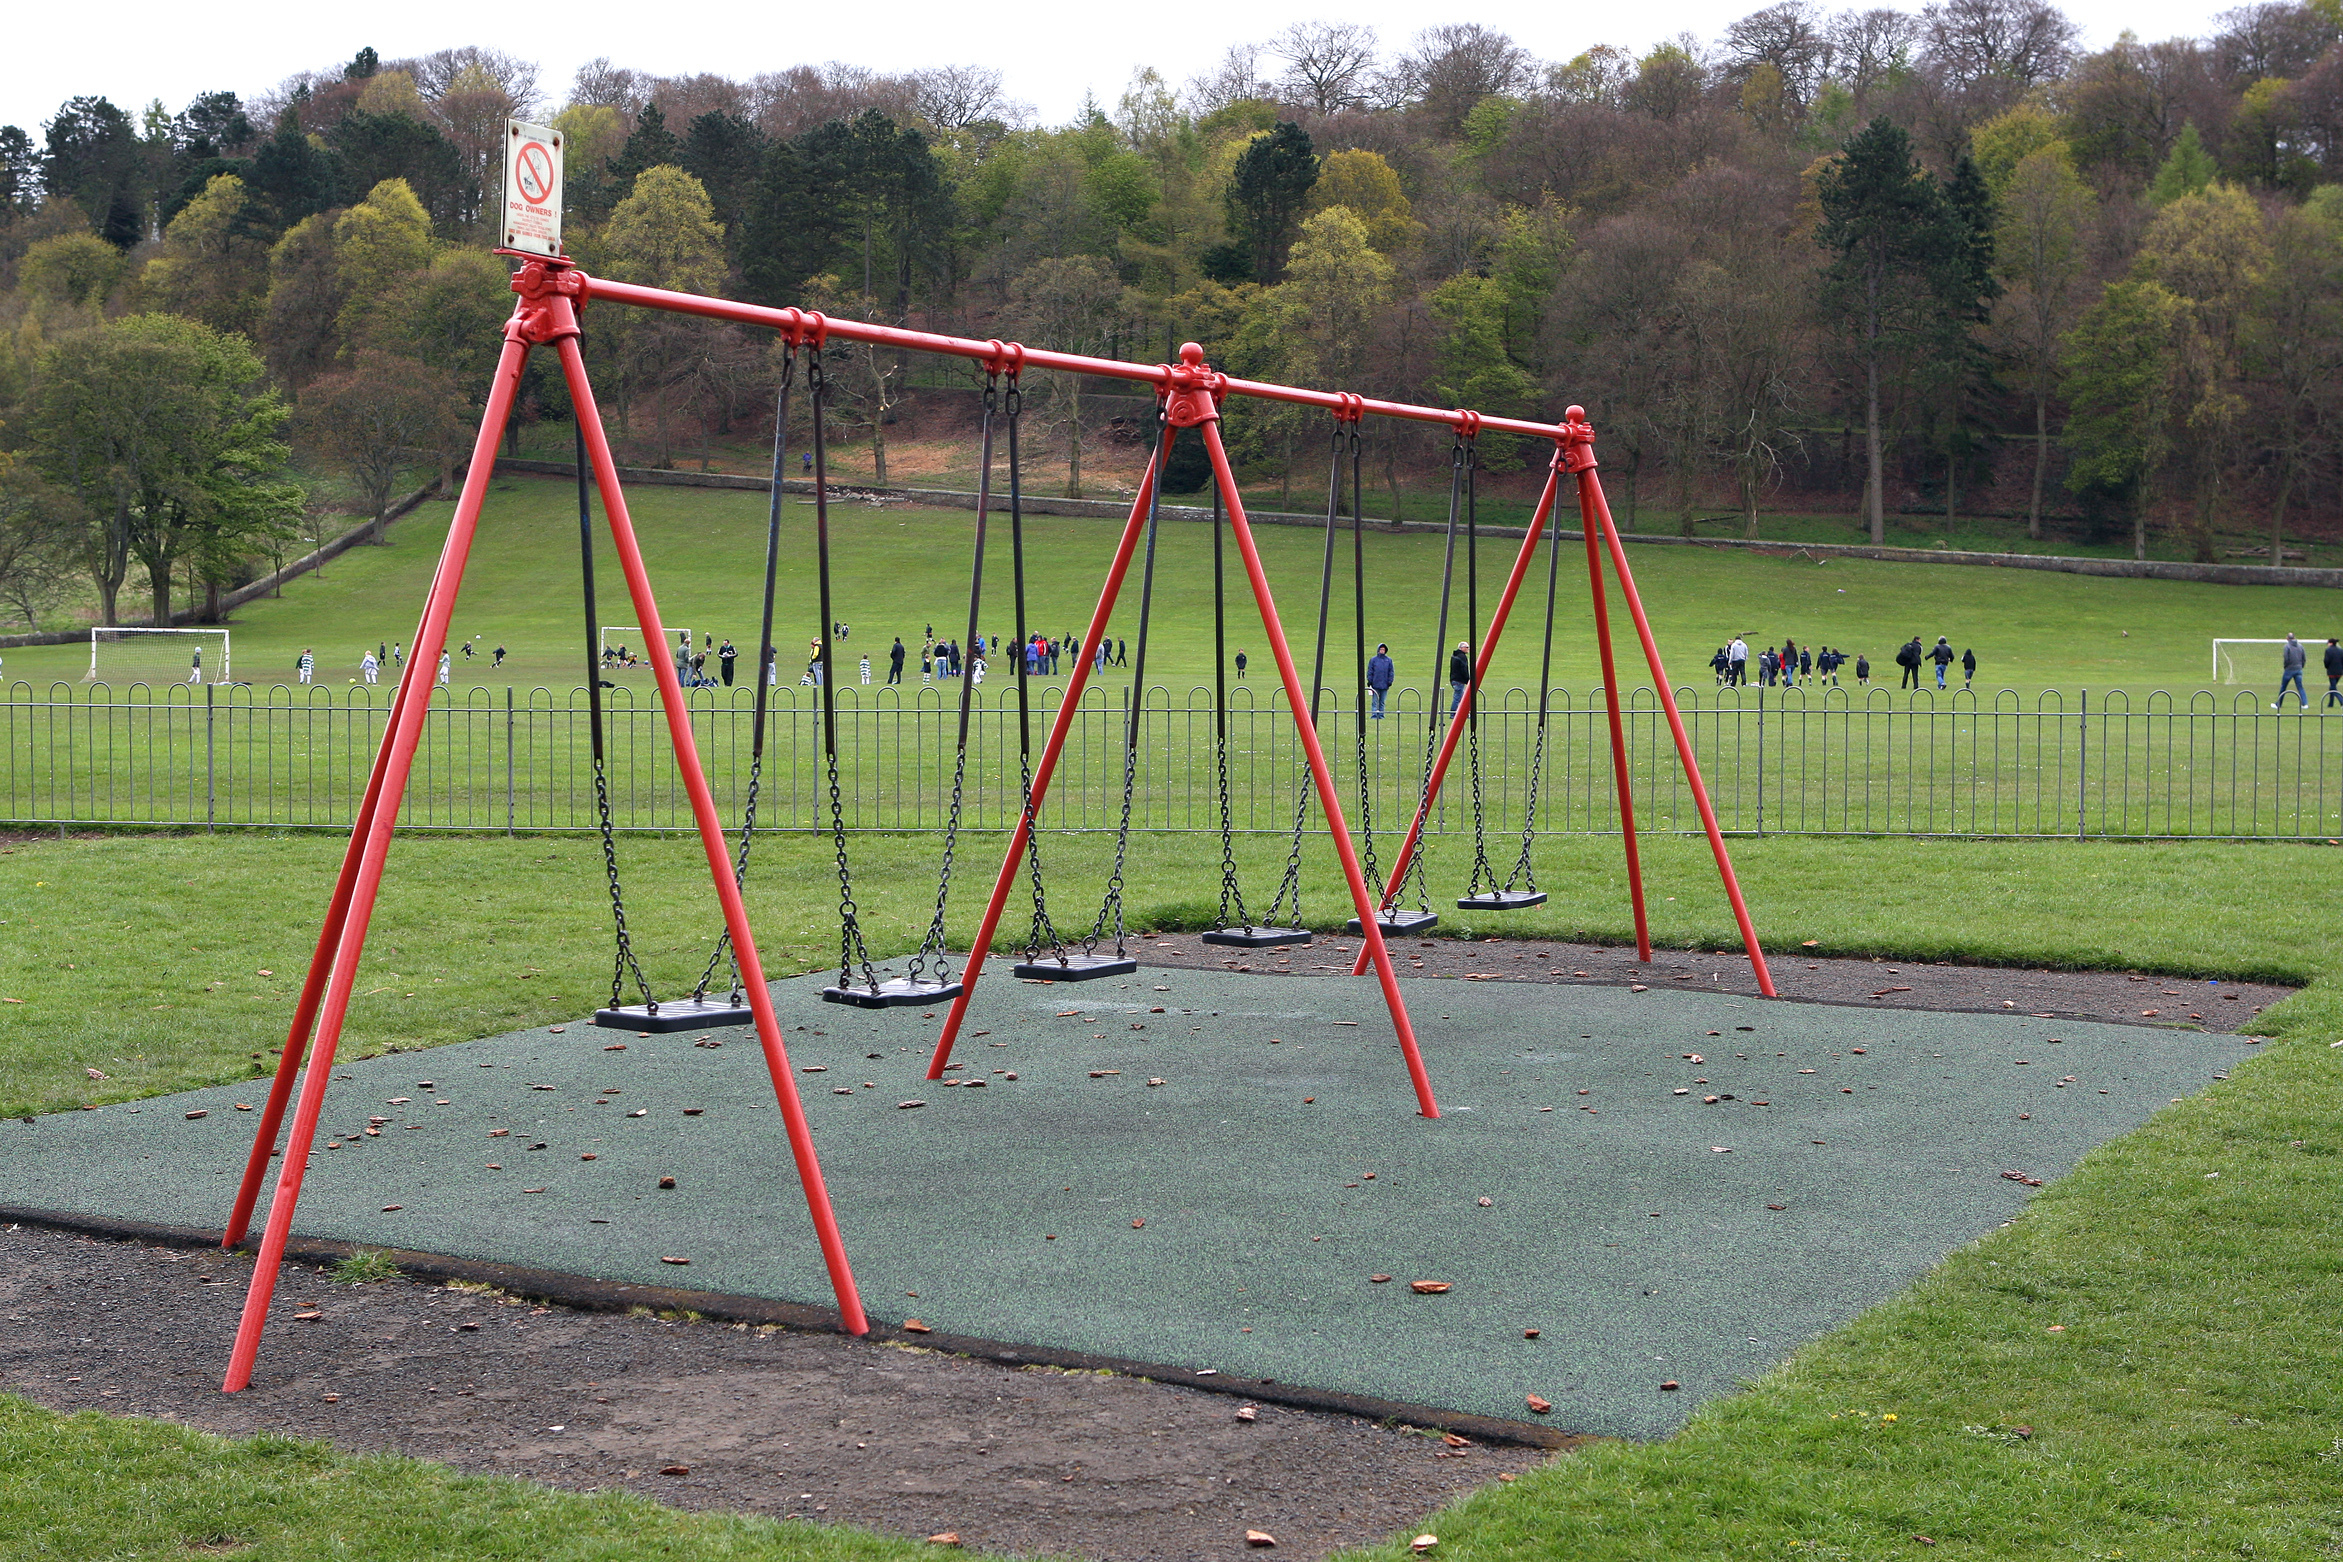 Swings at Lochee Park